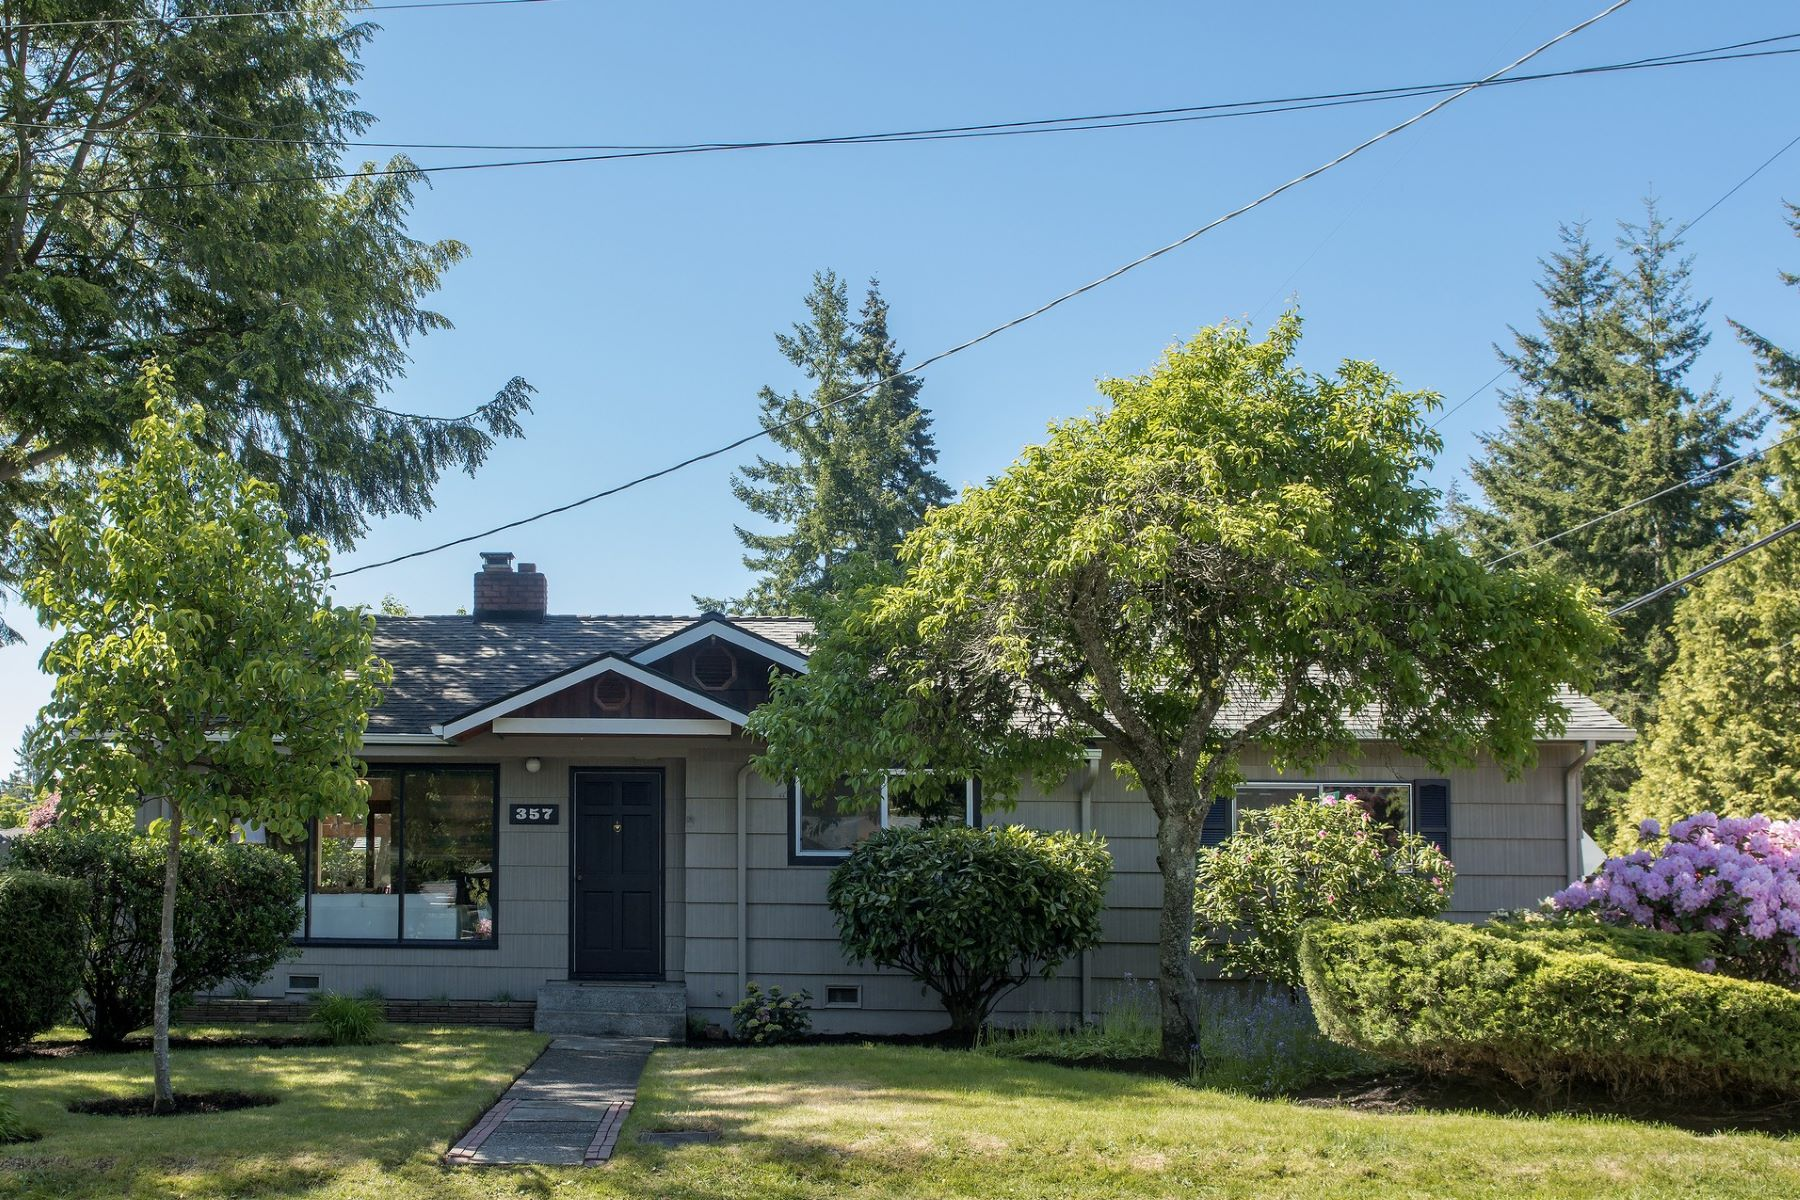 Single Family Home for Sale at Richmond Highlands Rambler 357 NW 182nd St Shoreline, Washington 98177 United States